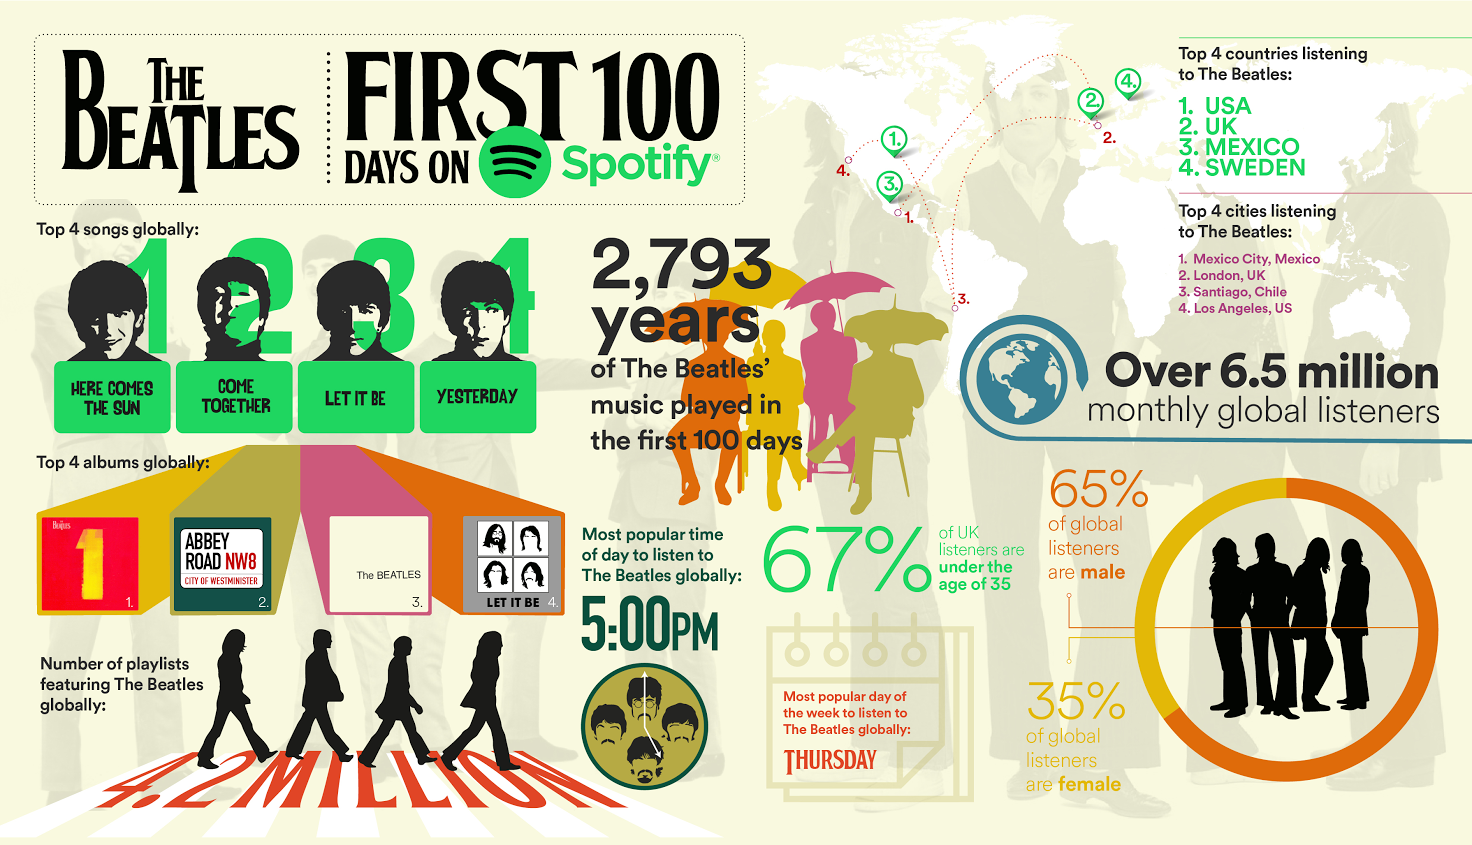 Beatles rock Spotify in first 100 days of streaming